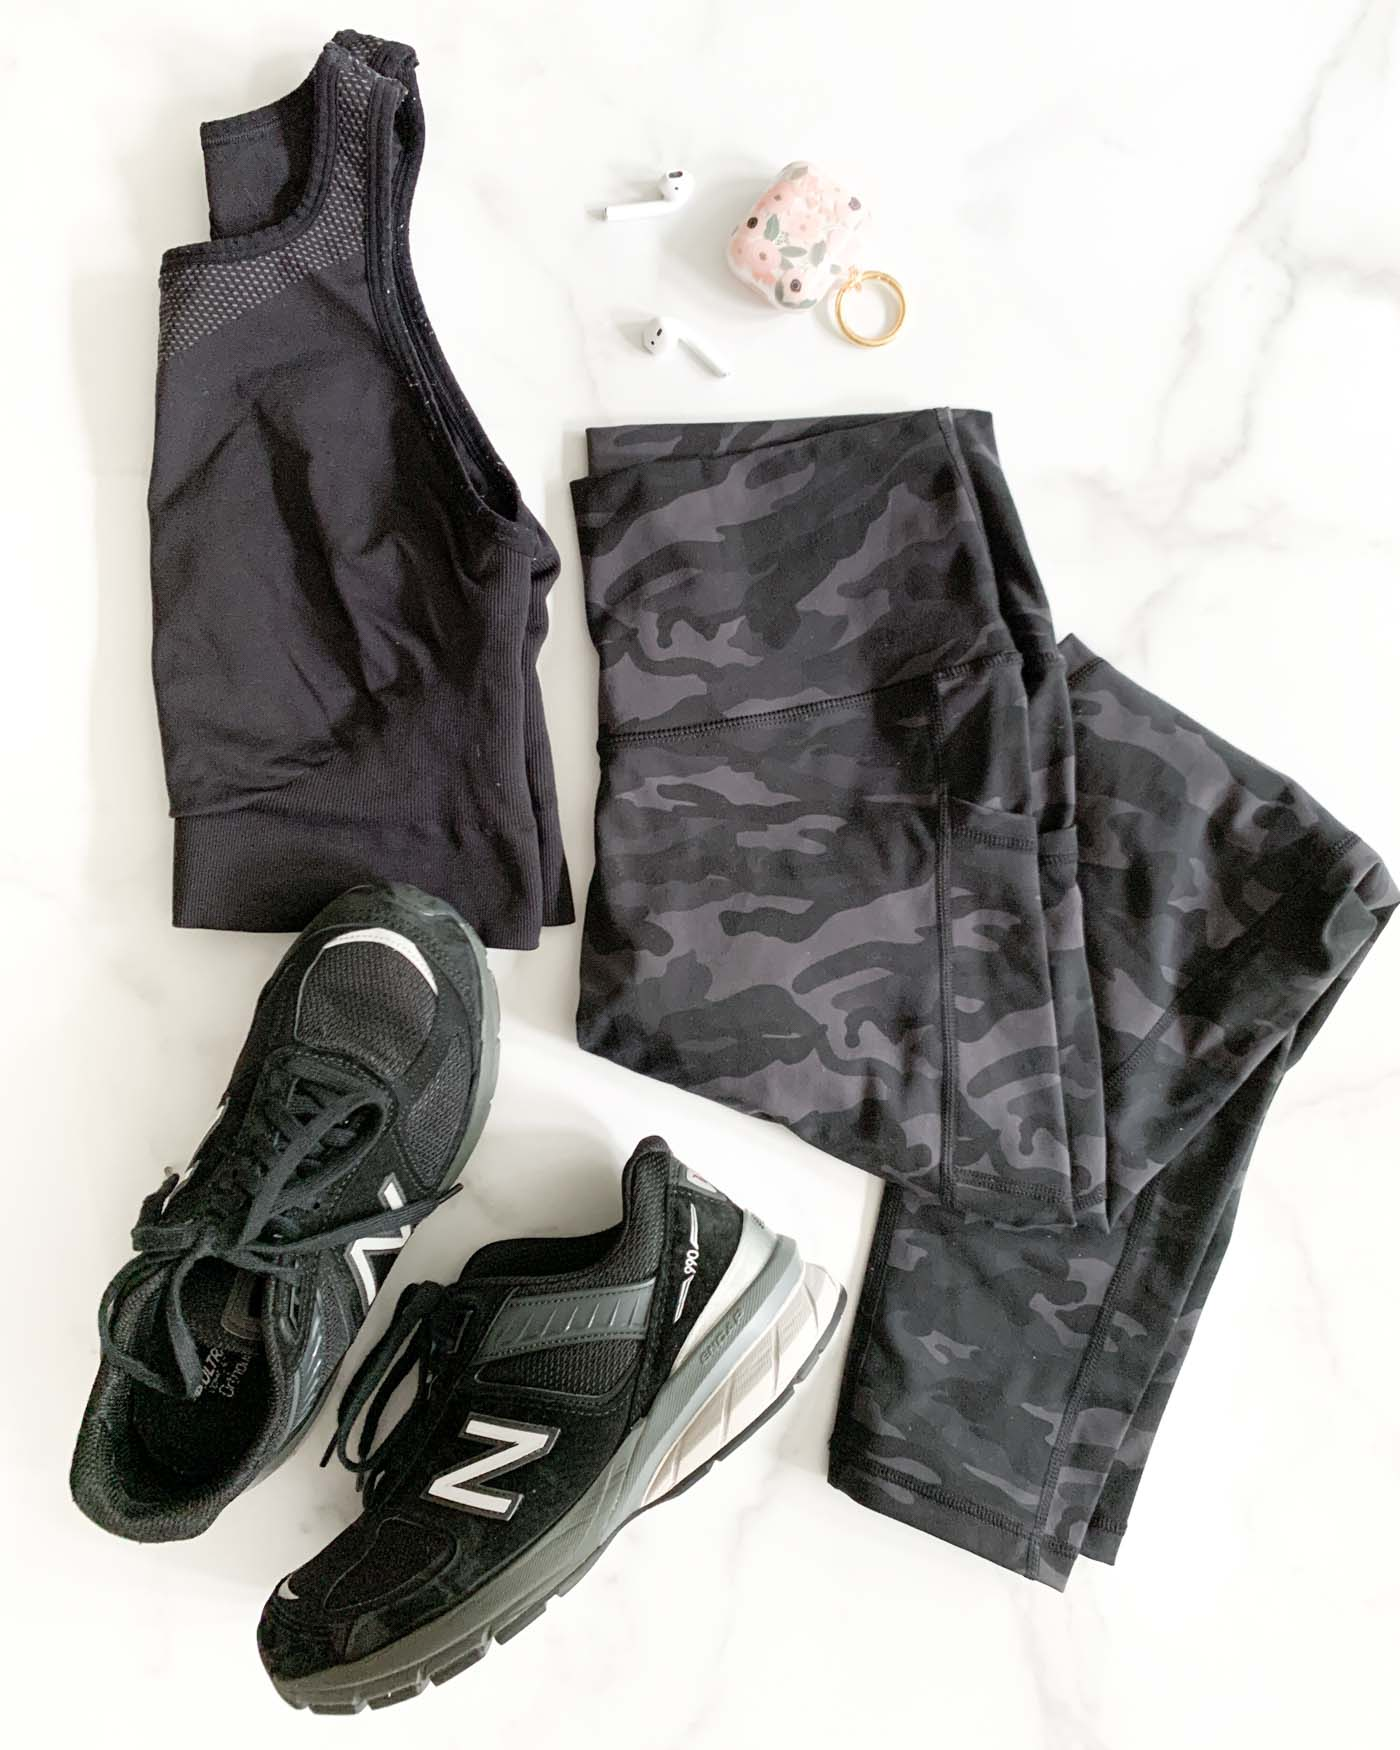 Best Black (Affordable) Workout Outfit and Gear